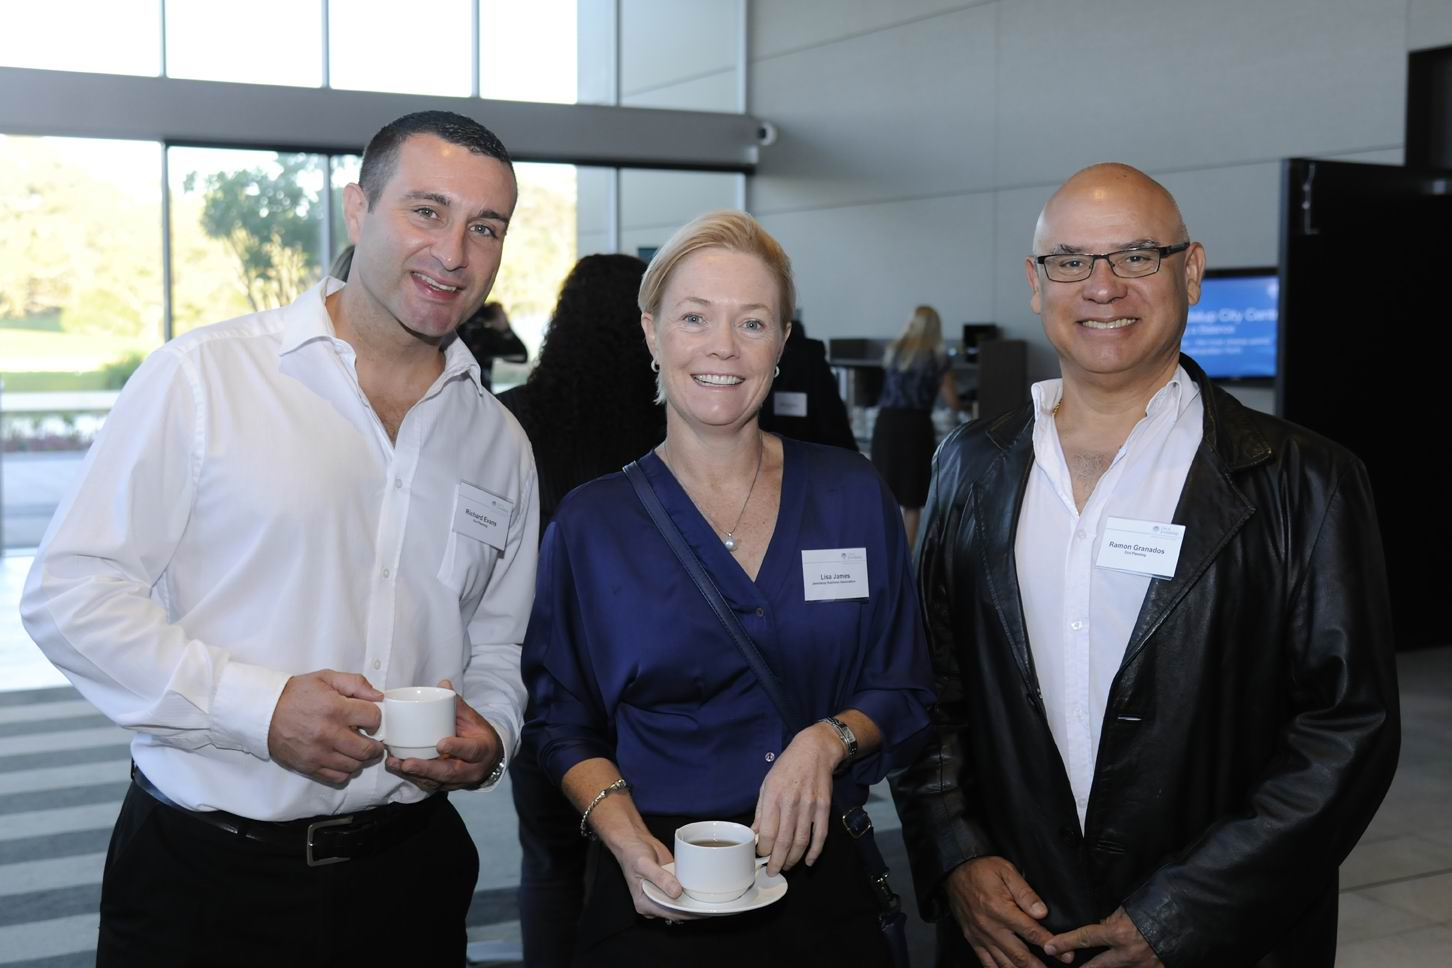 Richard Evans, Lisa James and Ramon Granados. Picture: Chris Kershaw